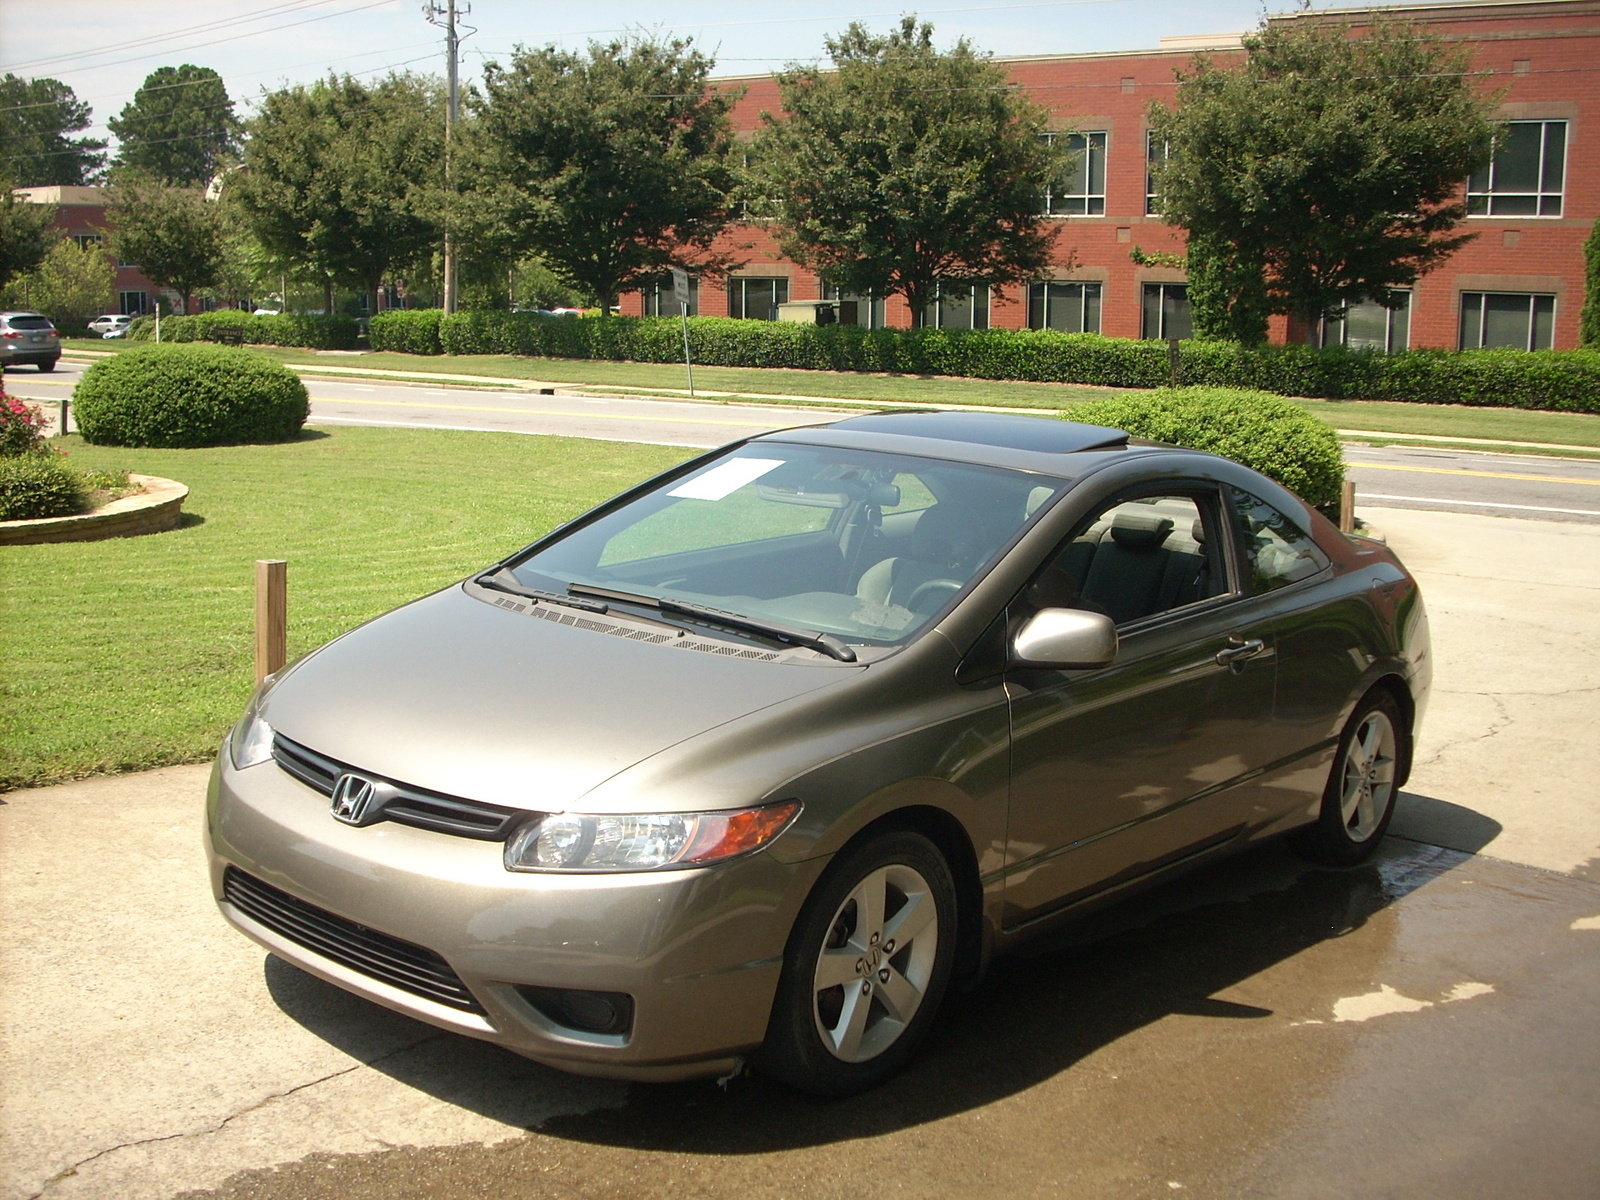 of 2007 honda civic coupe ex view garage smzauto owns this honda civic. Black Bedroom Furniture Sets. Home Design Ideas